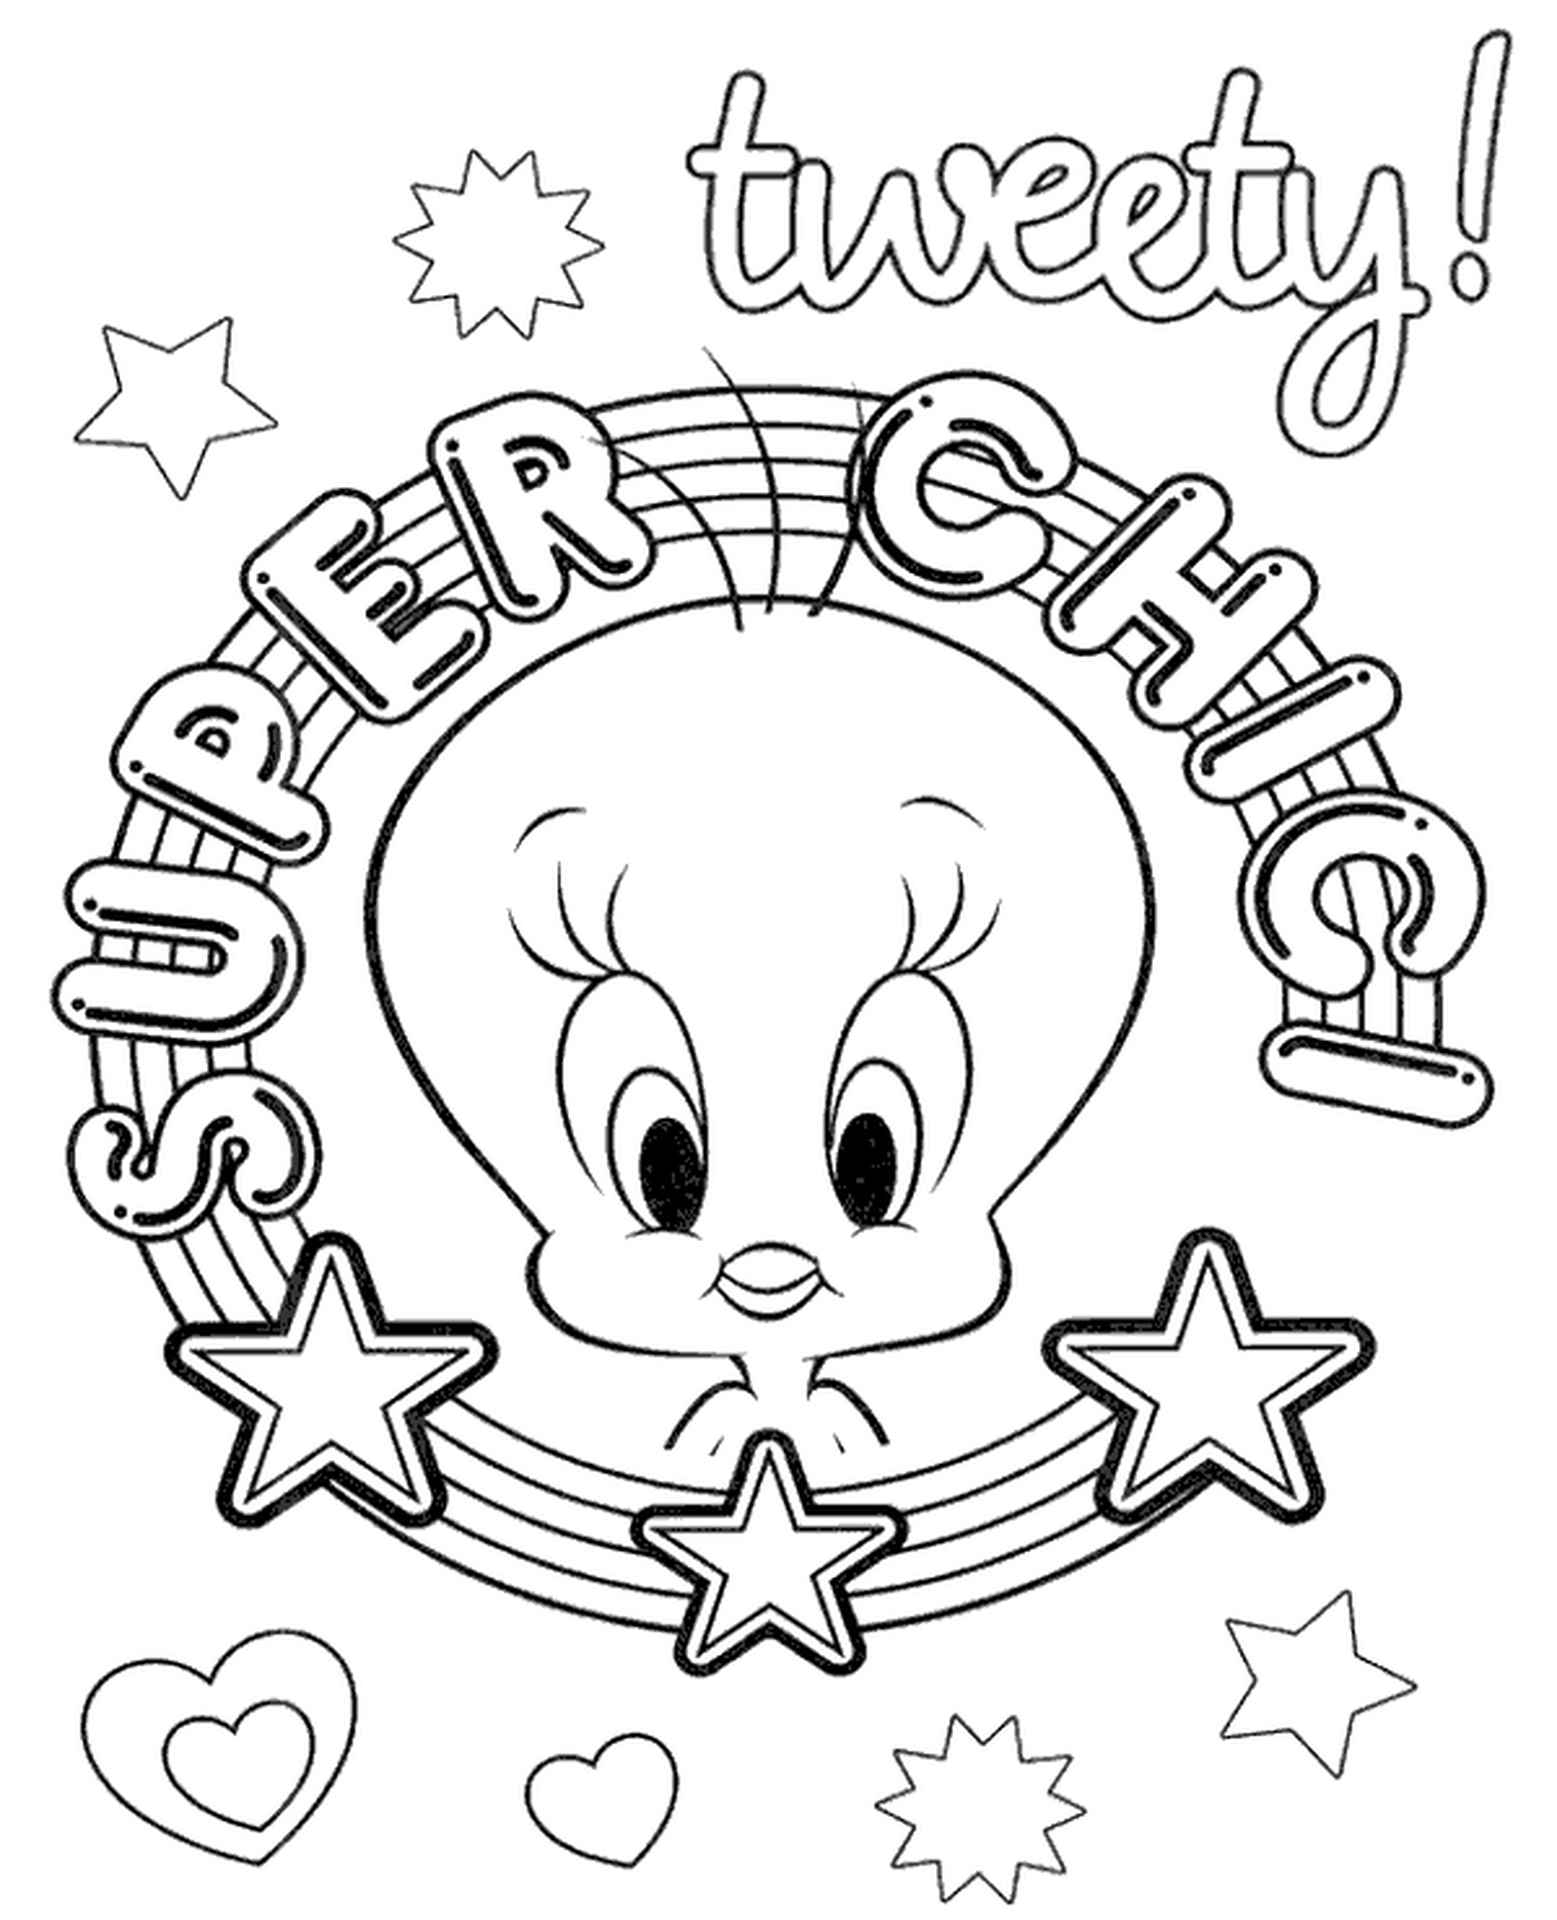 Super Chic Tweety Coloring Page